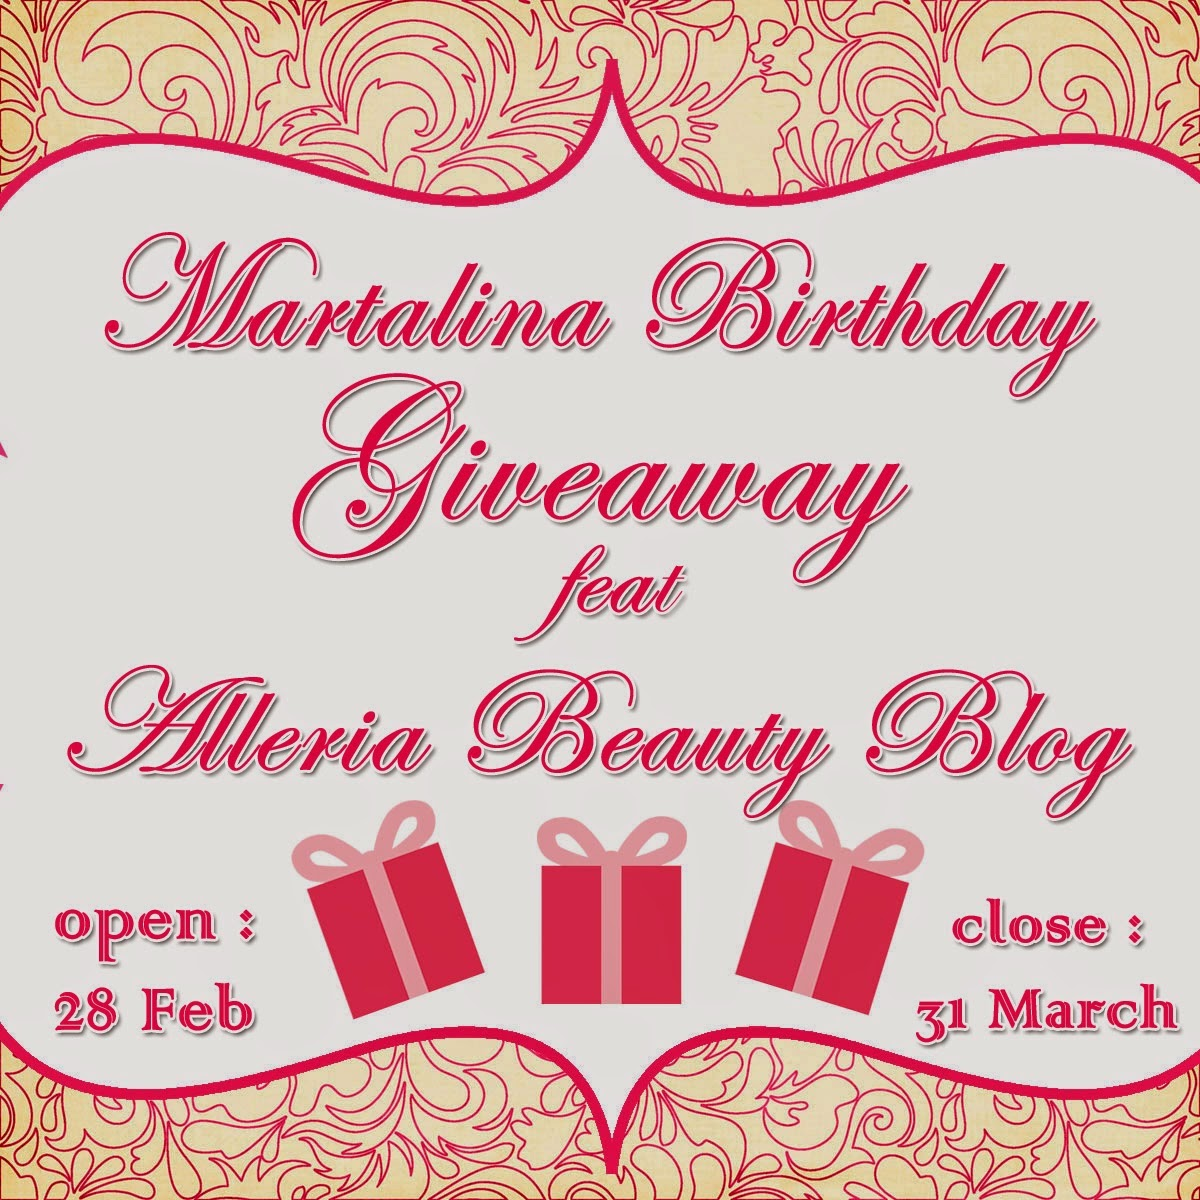 Martalina Birthday Giveaway feat. Alleria Beauty Blog